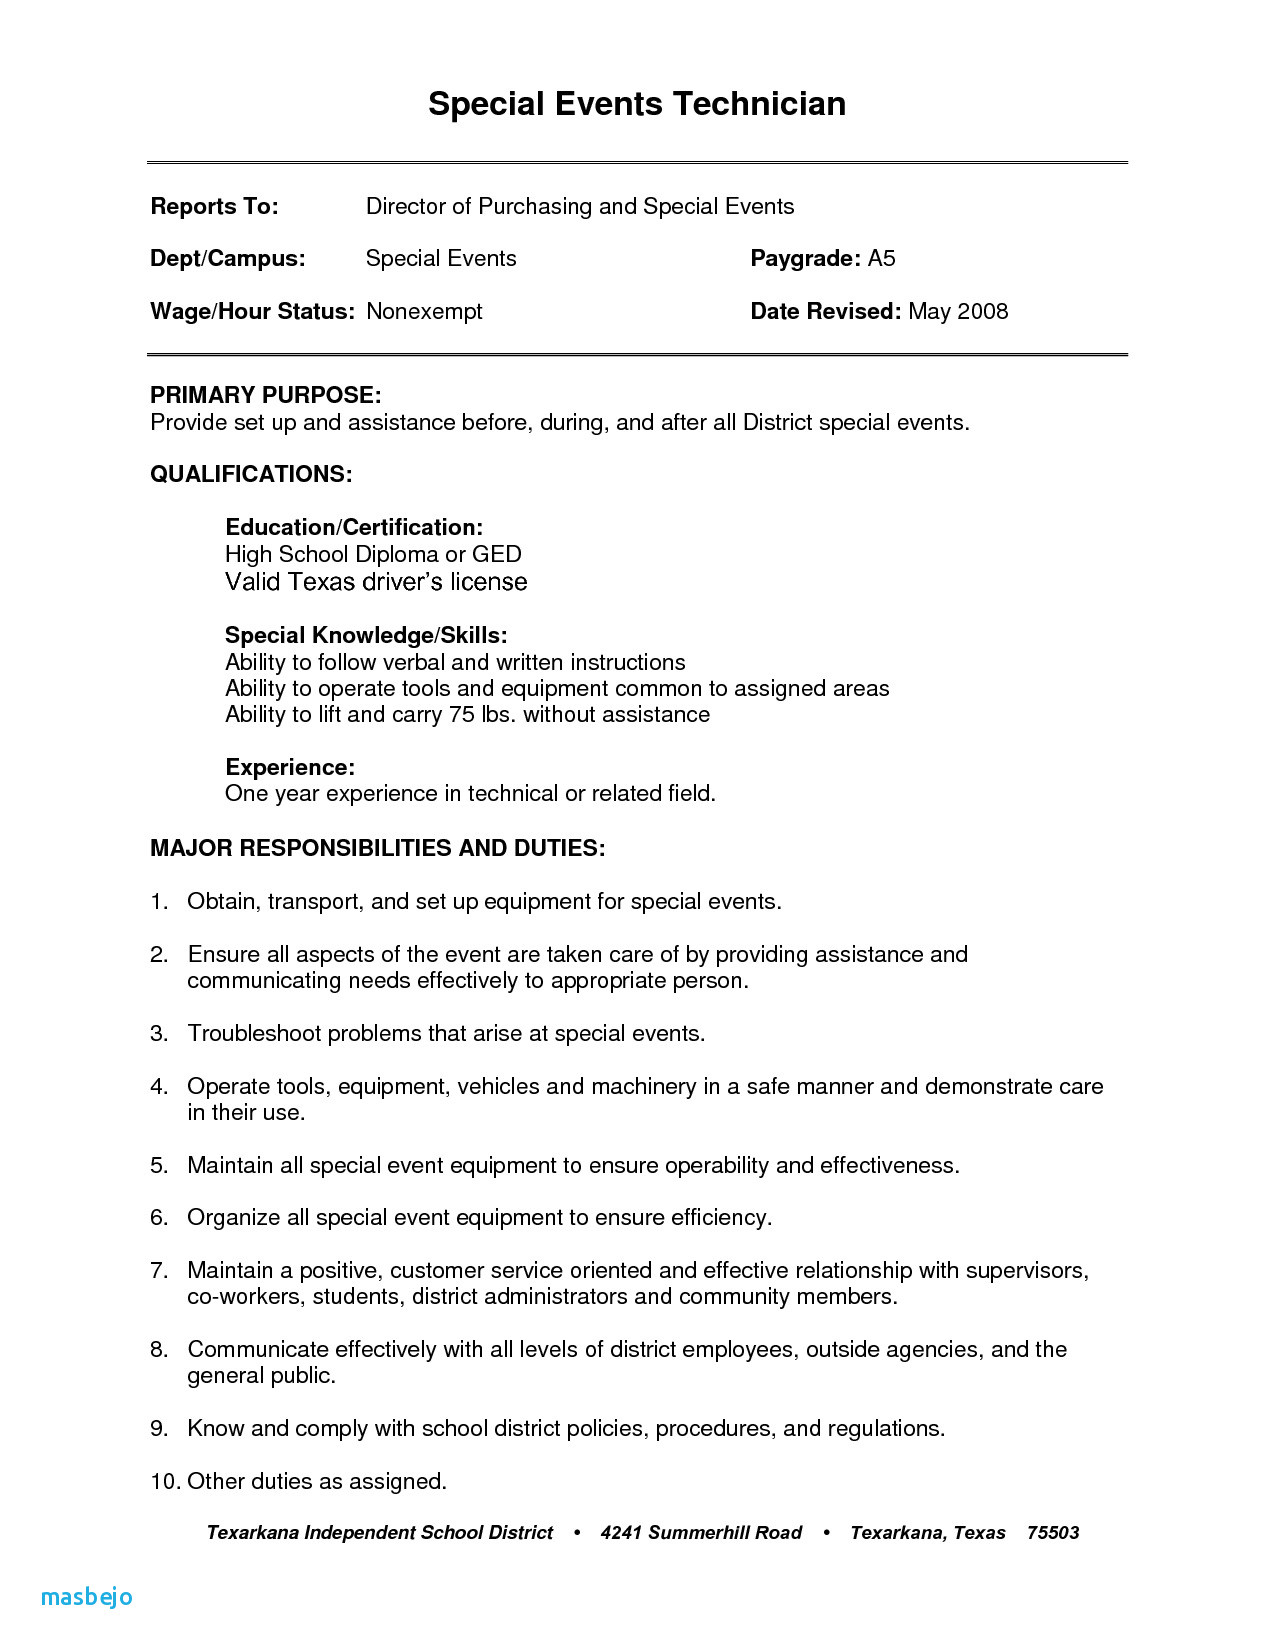 General Laborer Resume - General Labor Resume Construction Worker Resume Sample Luxury Create